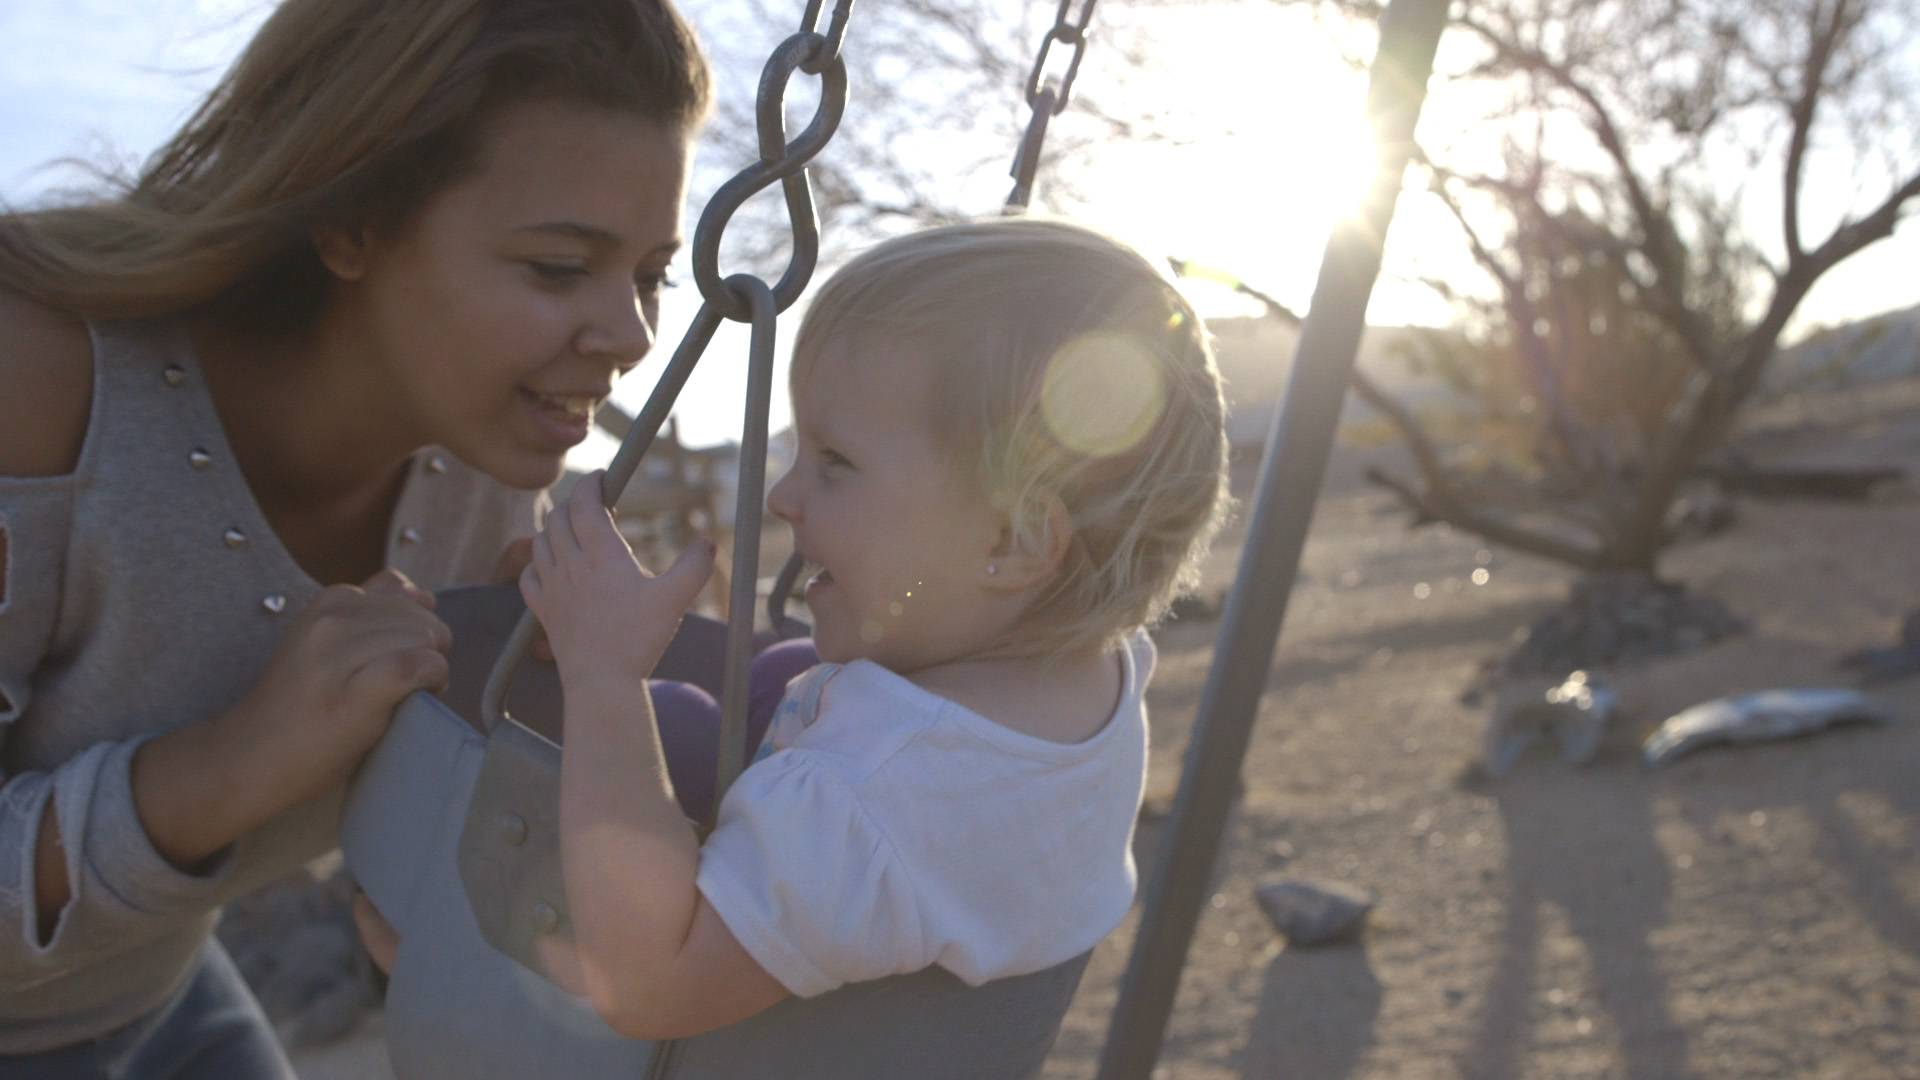 'Independent Lens' doc to put focus on alternative school for at-risk kids